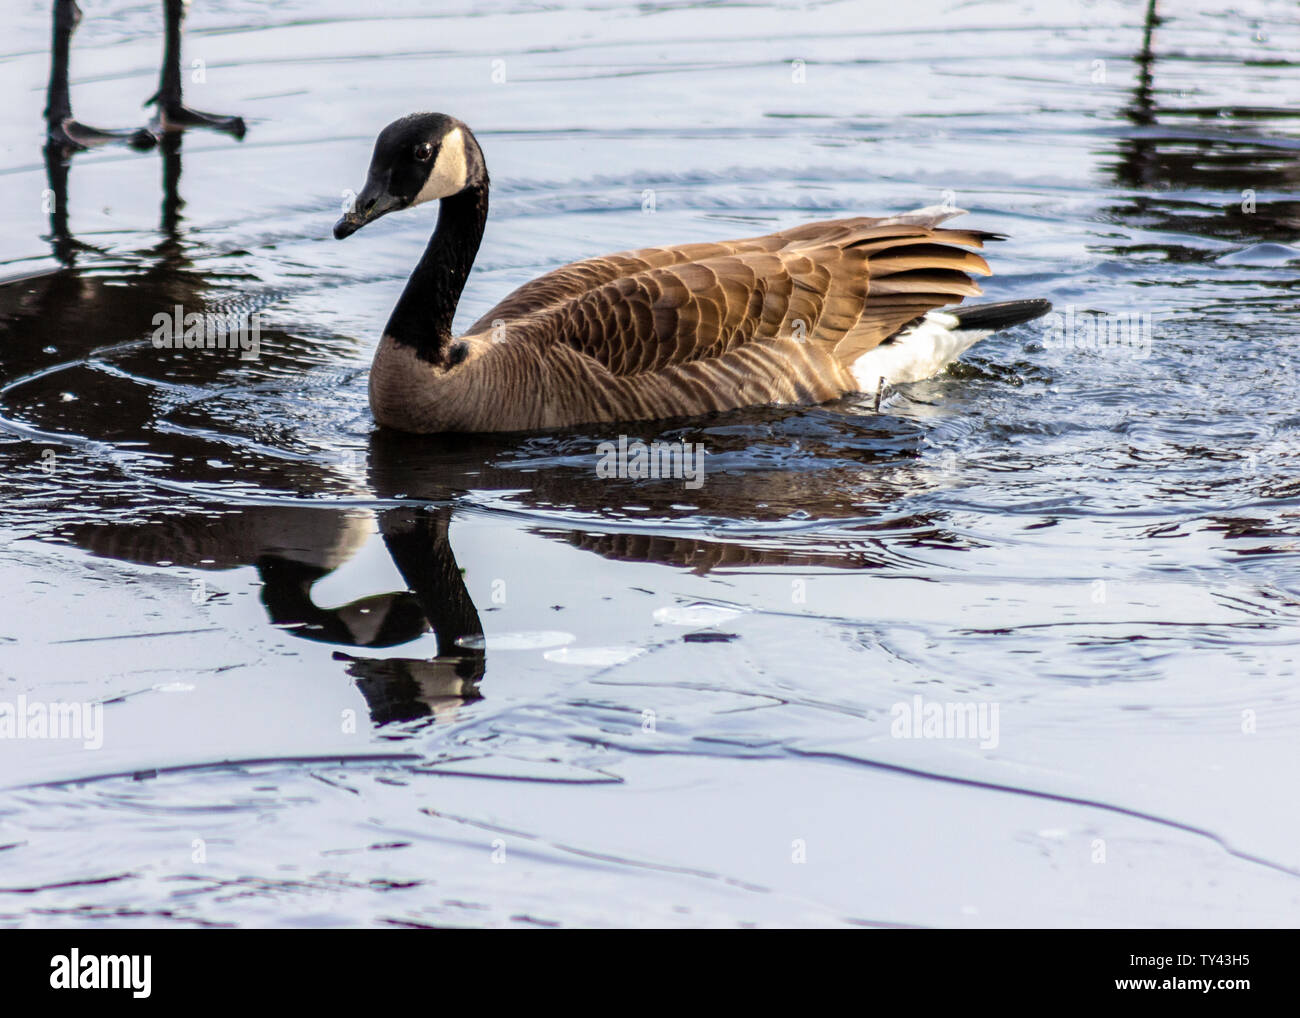 Beautiful Canada Goose breaking ice on frozen lake to swim. Stunning winter scene. Awesome water reflection. Broken ice on top of frozen water. Stock Photo